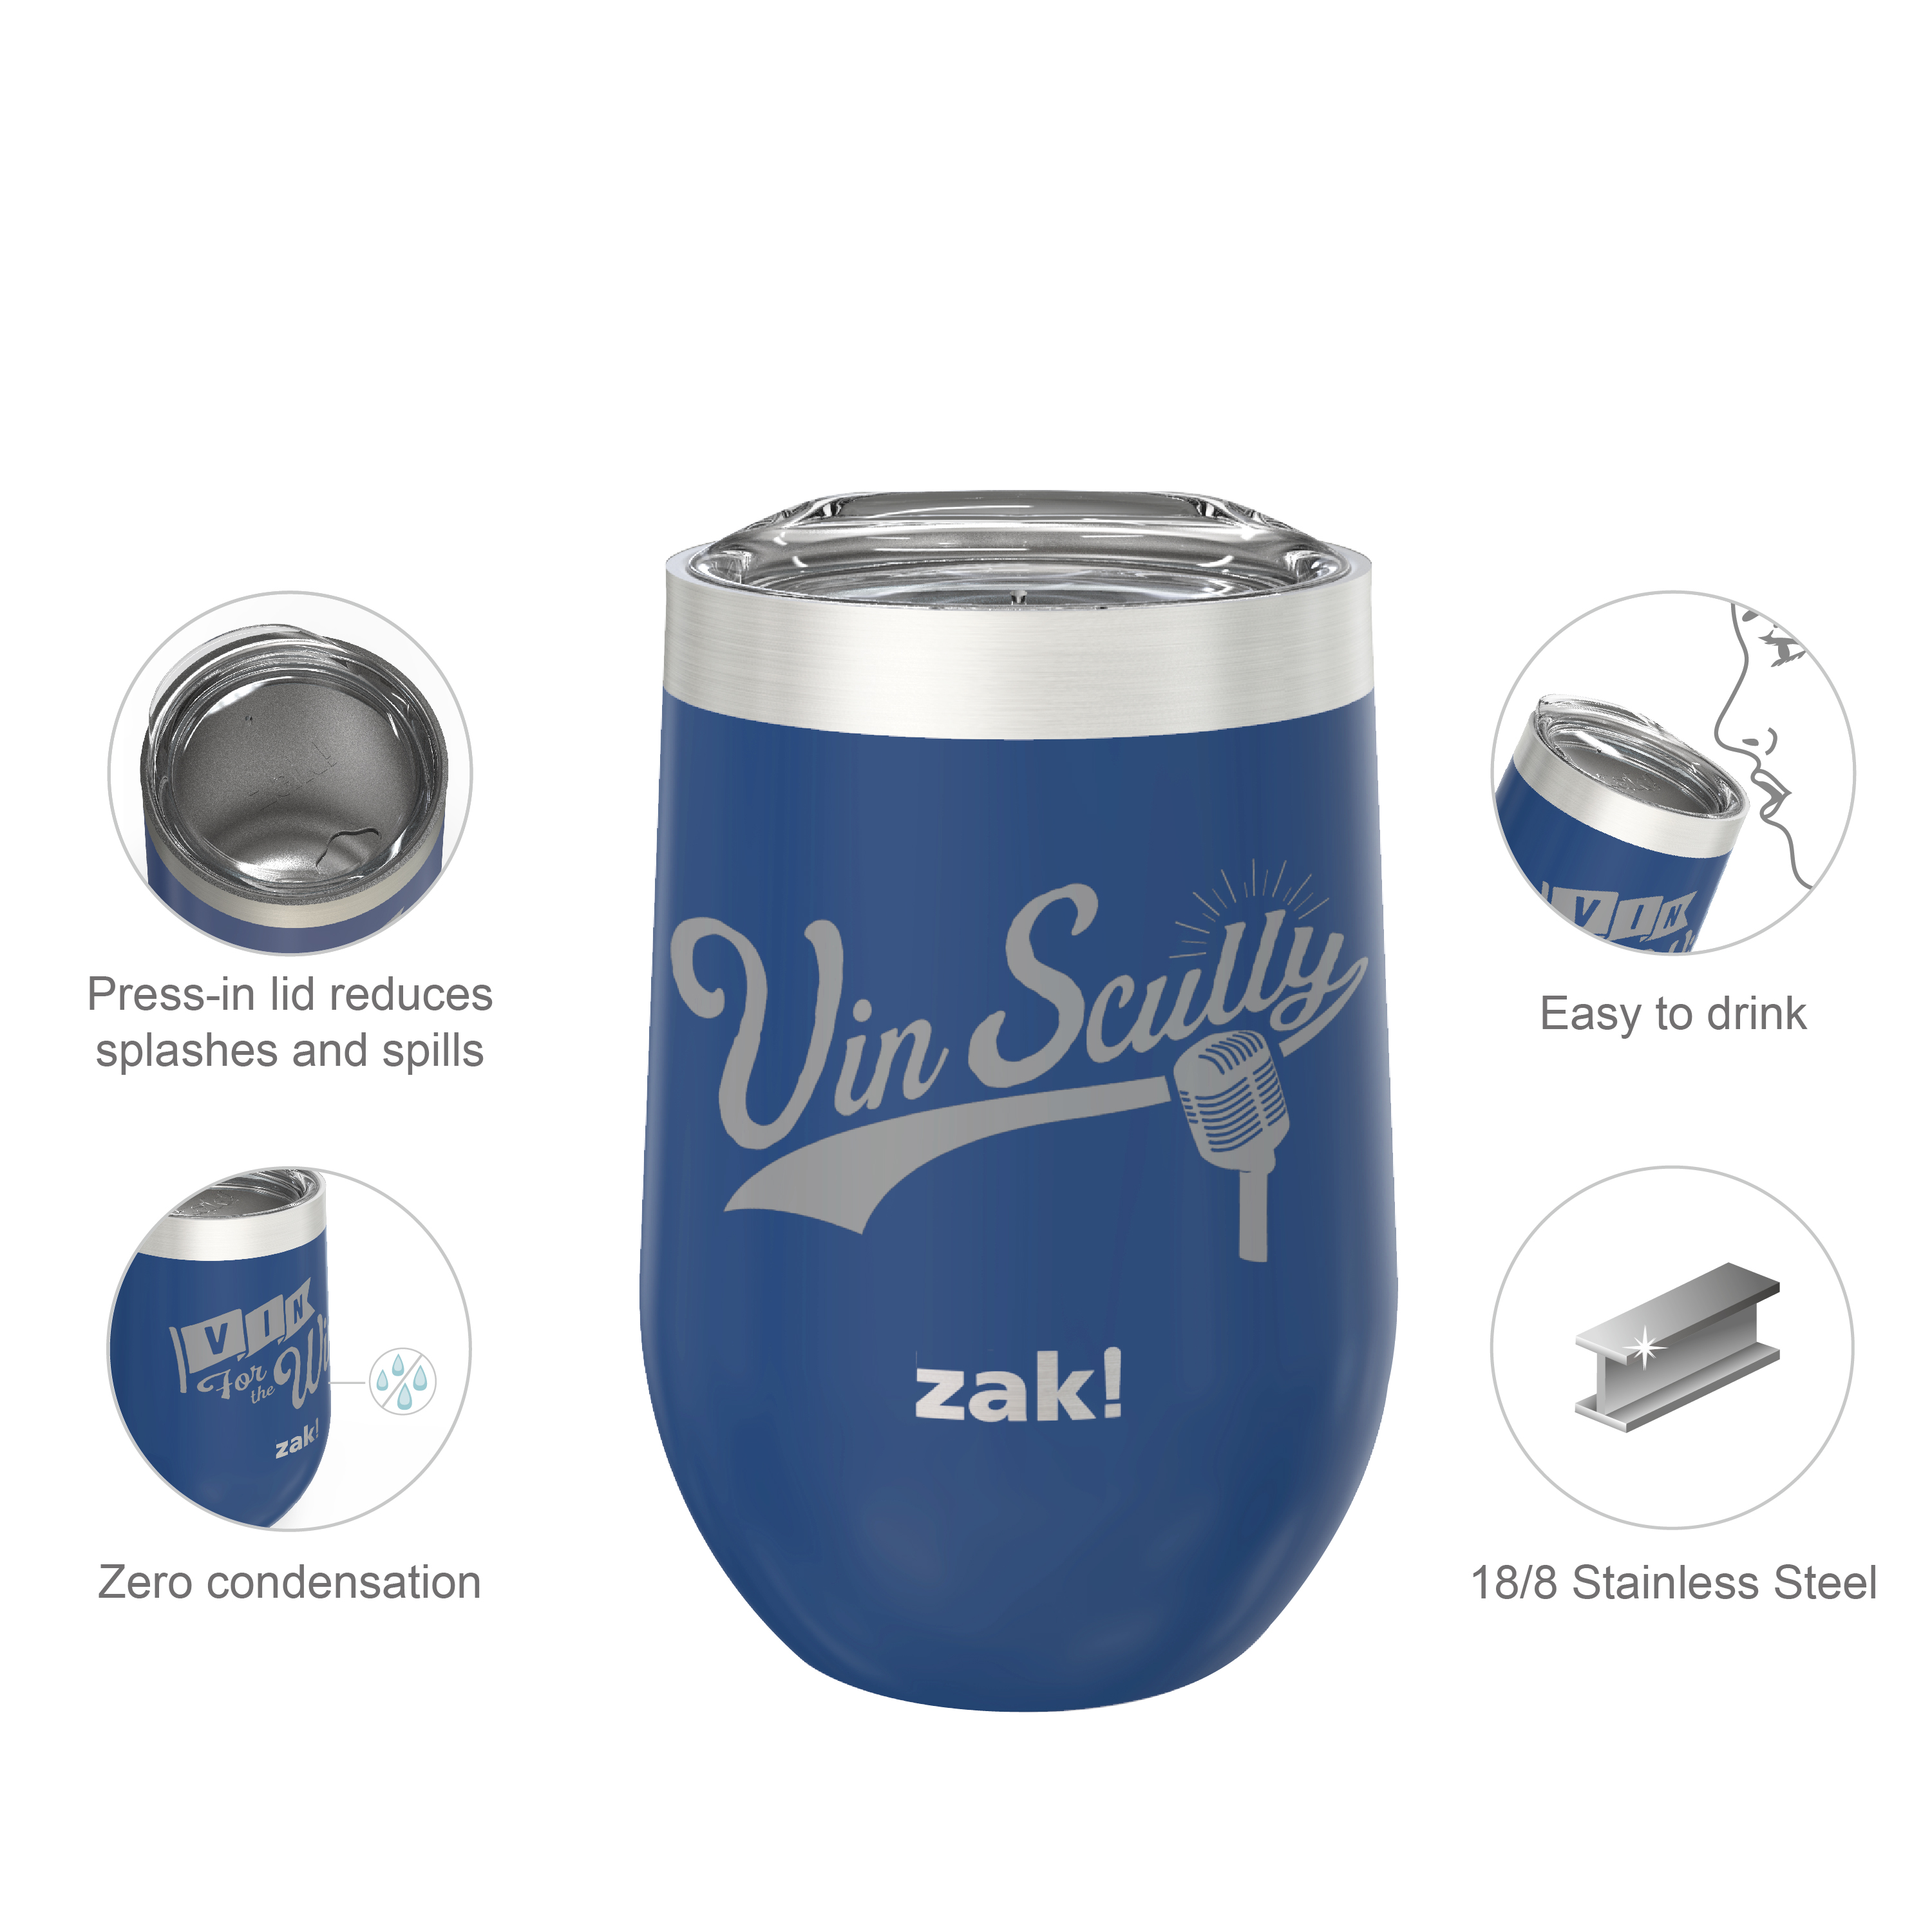 Zak Hydration 11.5 ounce Insulated Stainless Steel Tumbler, Vin Scully, 2-piece set slideshow image 6